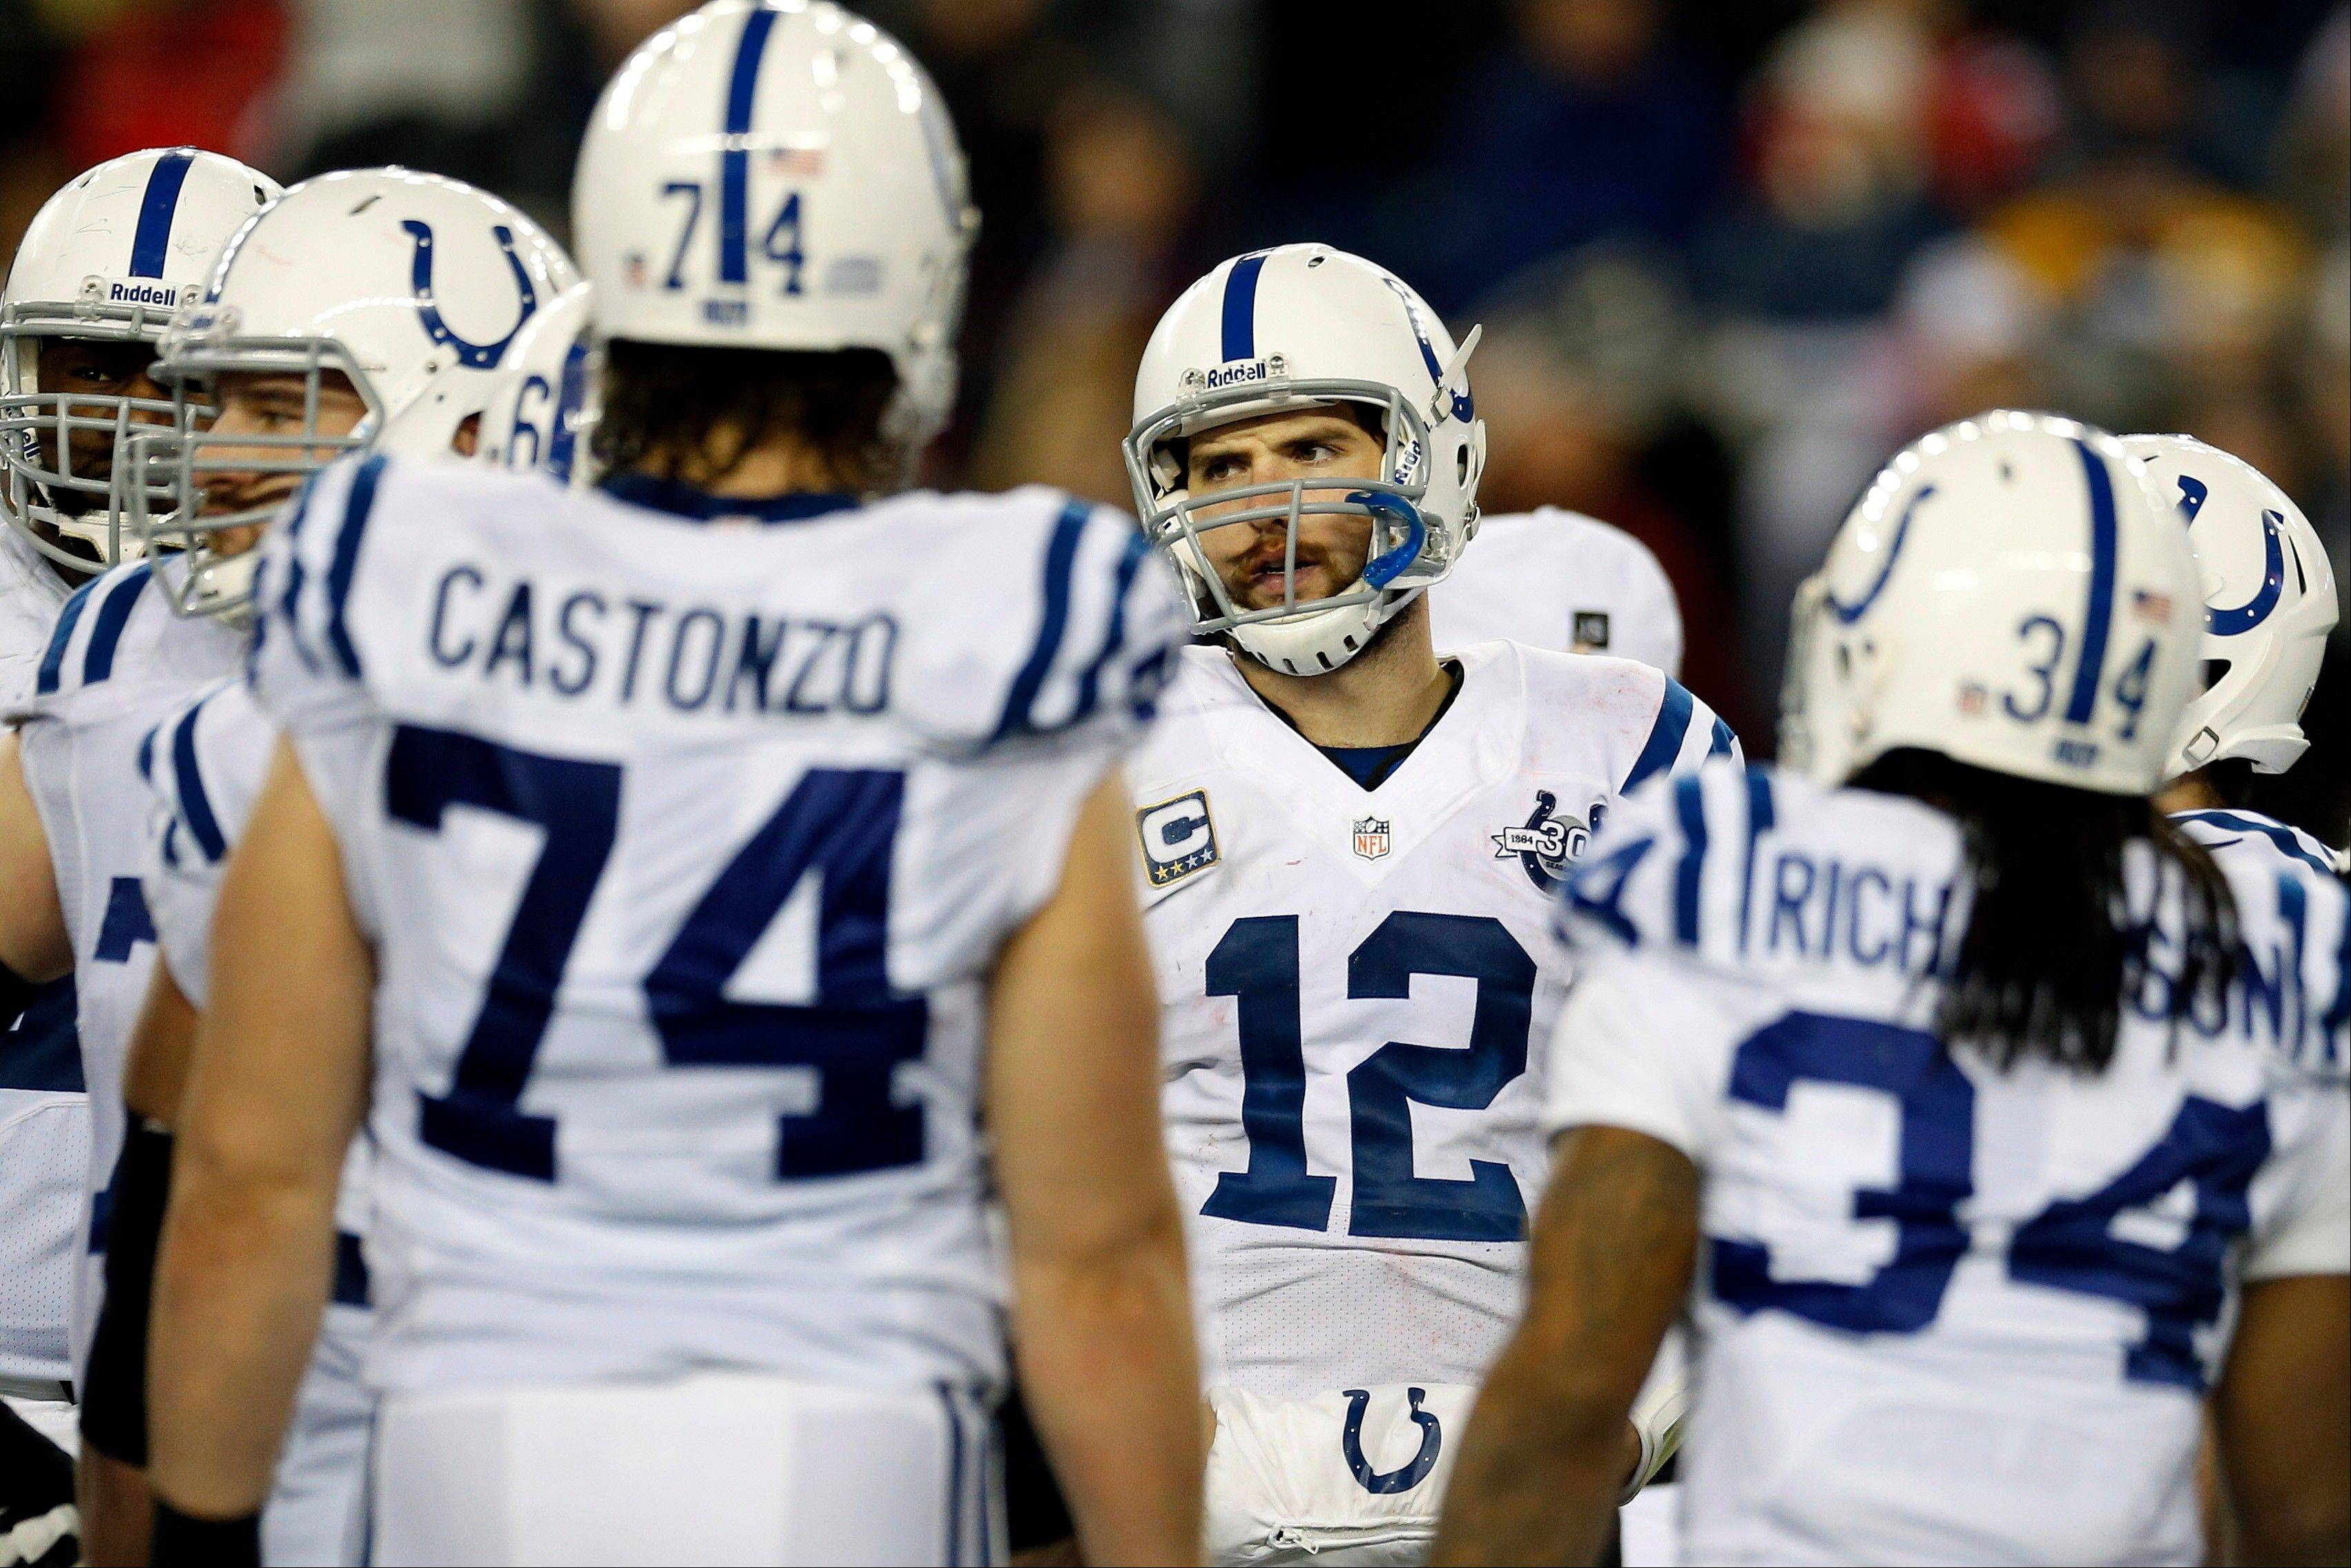 Indianapolis Colts quarterback Andrew Luck (12) stands with his team during the closing minutes of Saturday�s playoff loss to the New England Patriots in Foxborough, Mass.